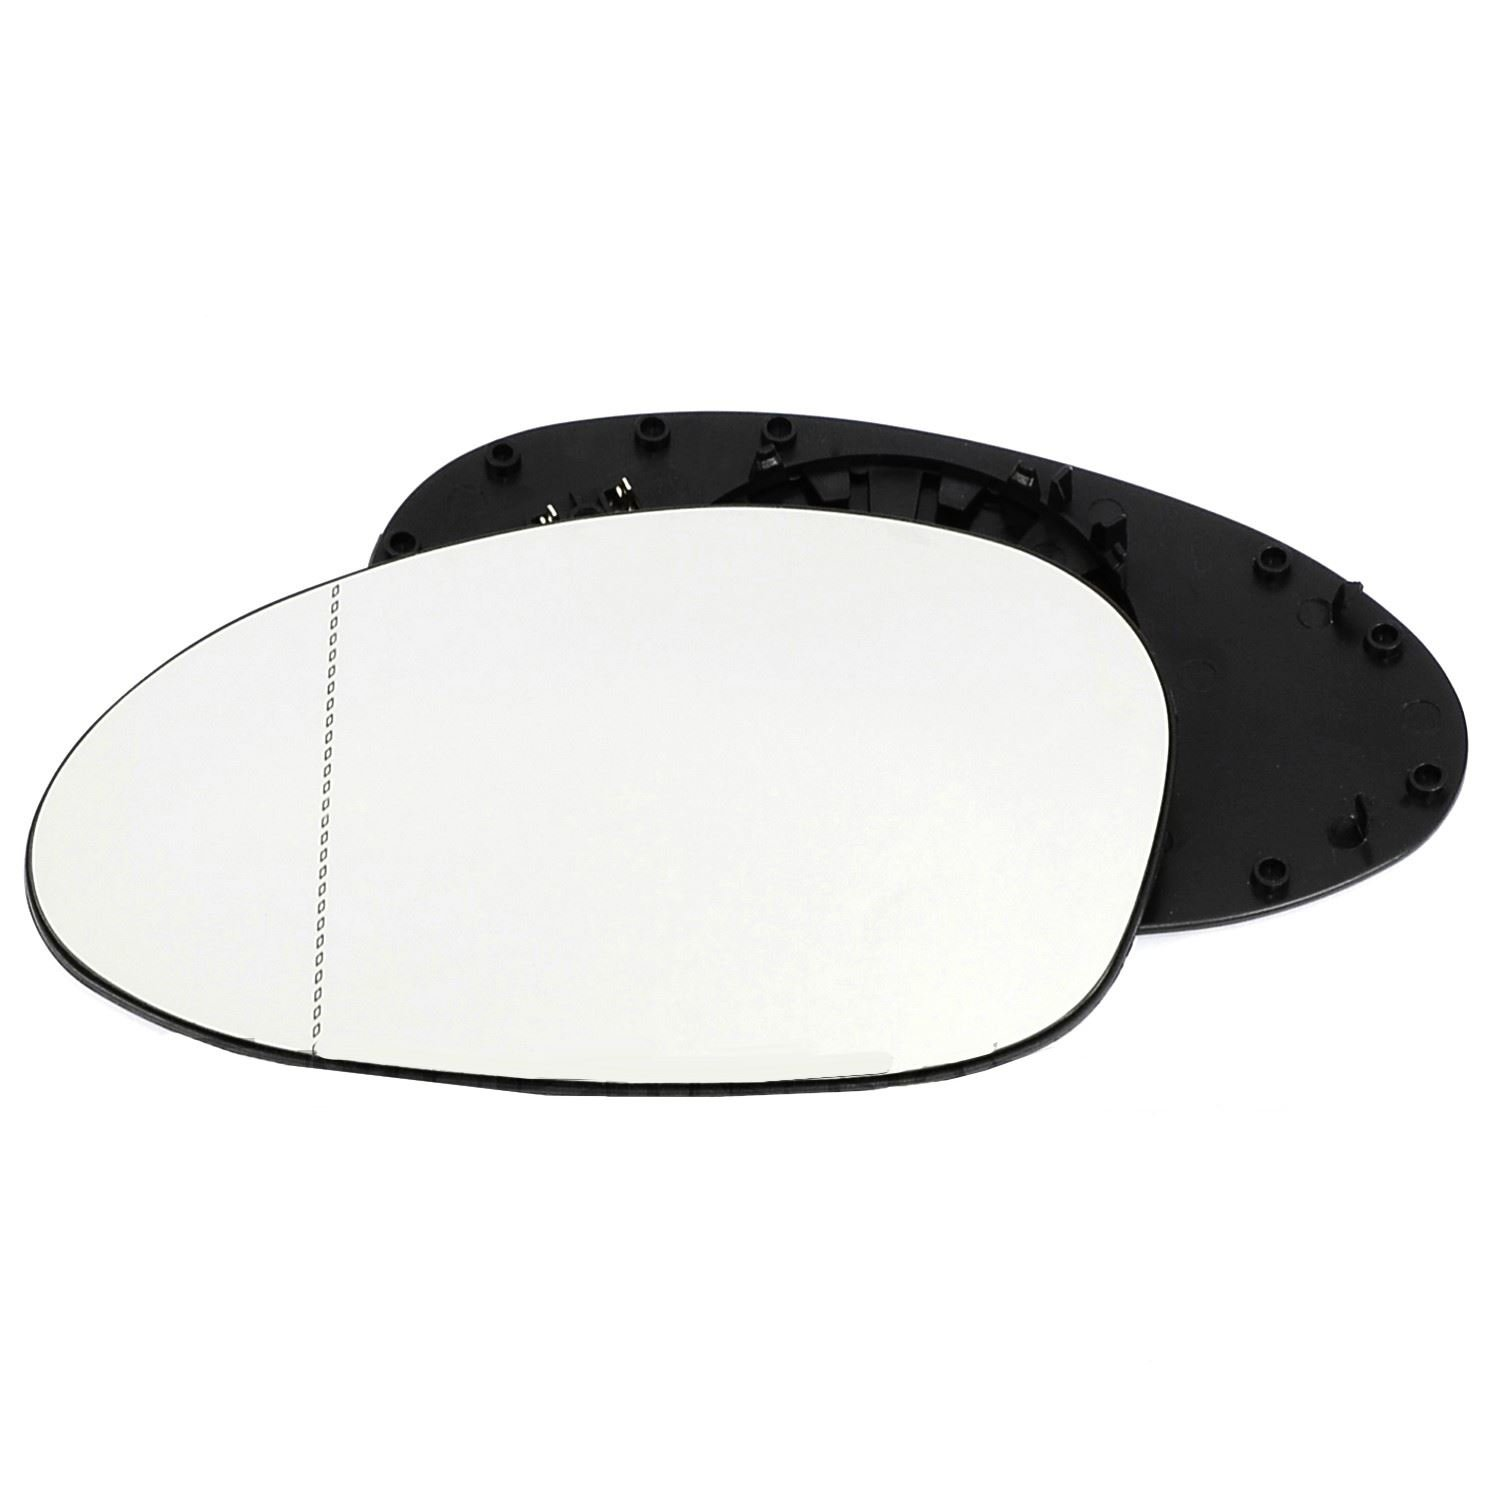 Passenger left hand side Heated wing door Silver mirror glass with backing plate #W-SHY//L-BWZE8502 Clip On